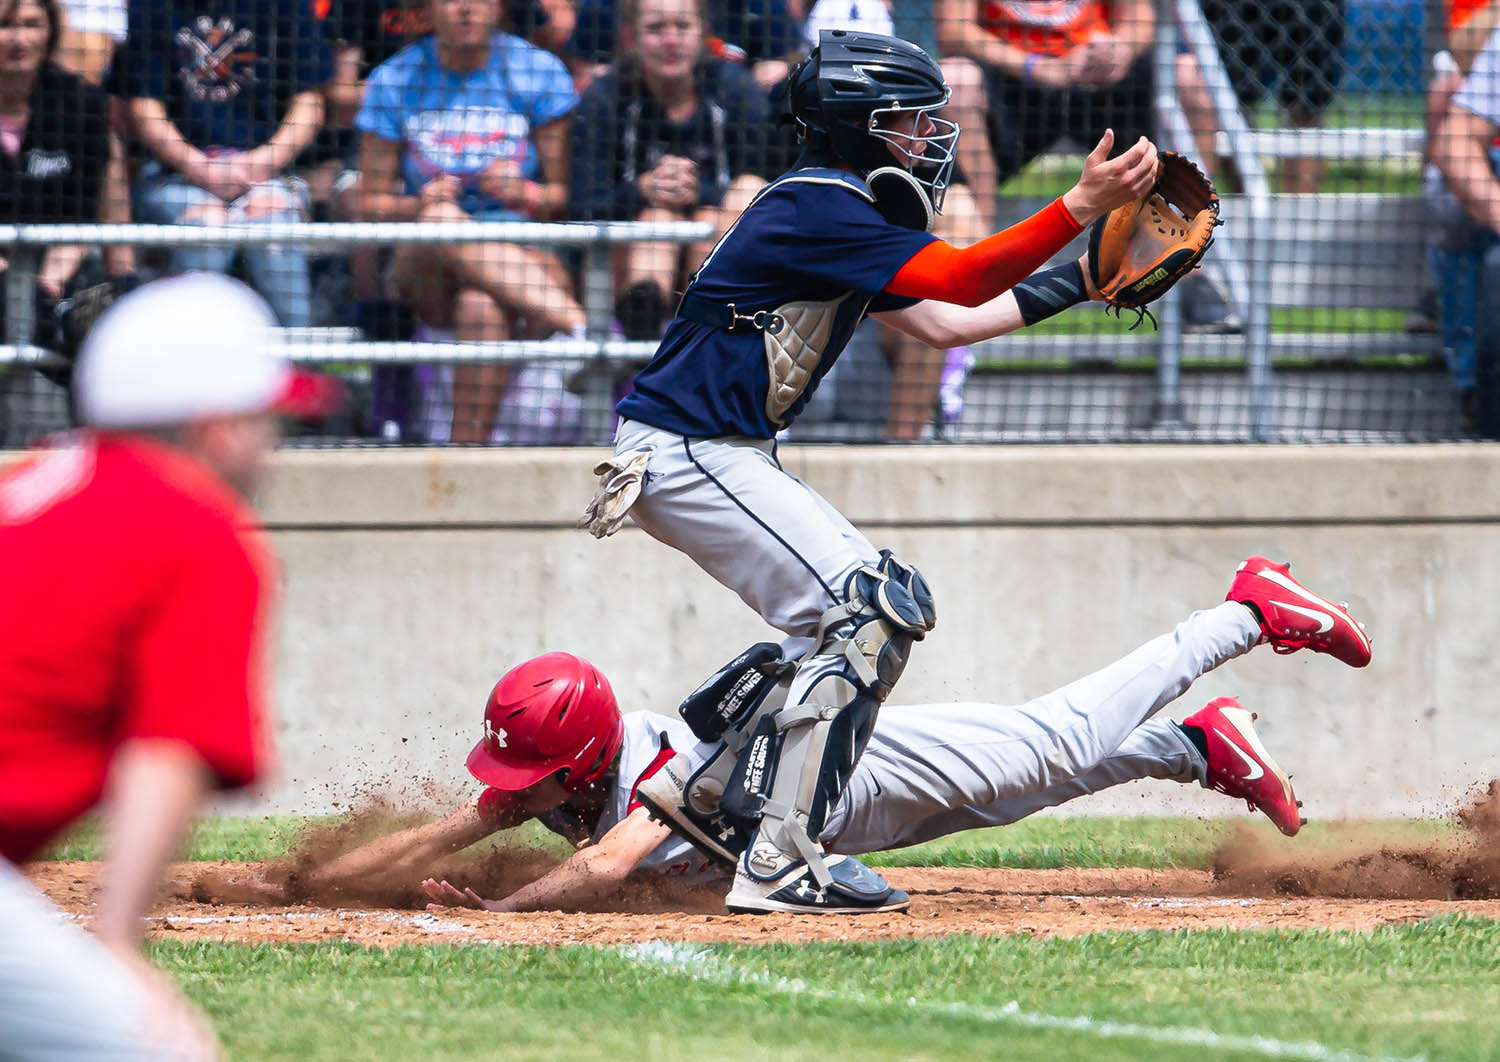 Pleasant Plains' Reese Snell (3) slides safely into home to put the Cardinals up 4-0 over New Berlin in the 2nd inning in the Class 2A Pleasant Plains Sectional championship game at Reiser Field, Saturday, May 25, 2019, in Pleasant Plains, Ill. [Justin L. Fowler/The State Journal-Register]